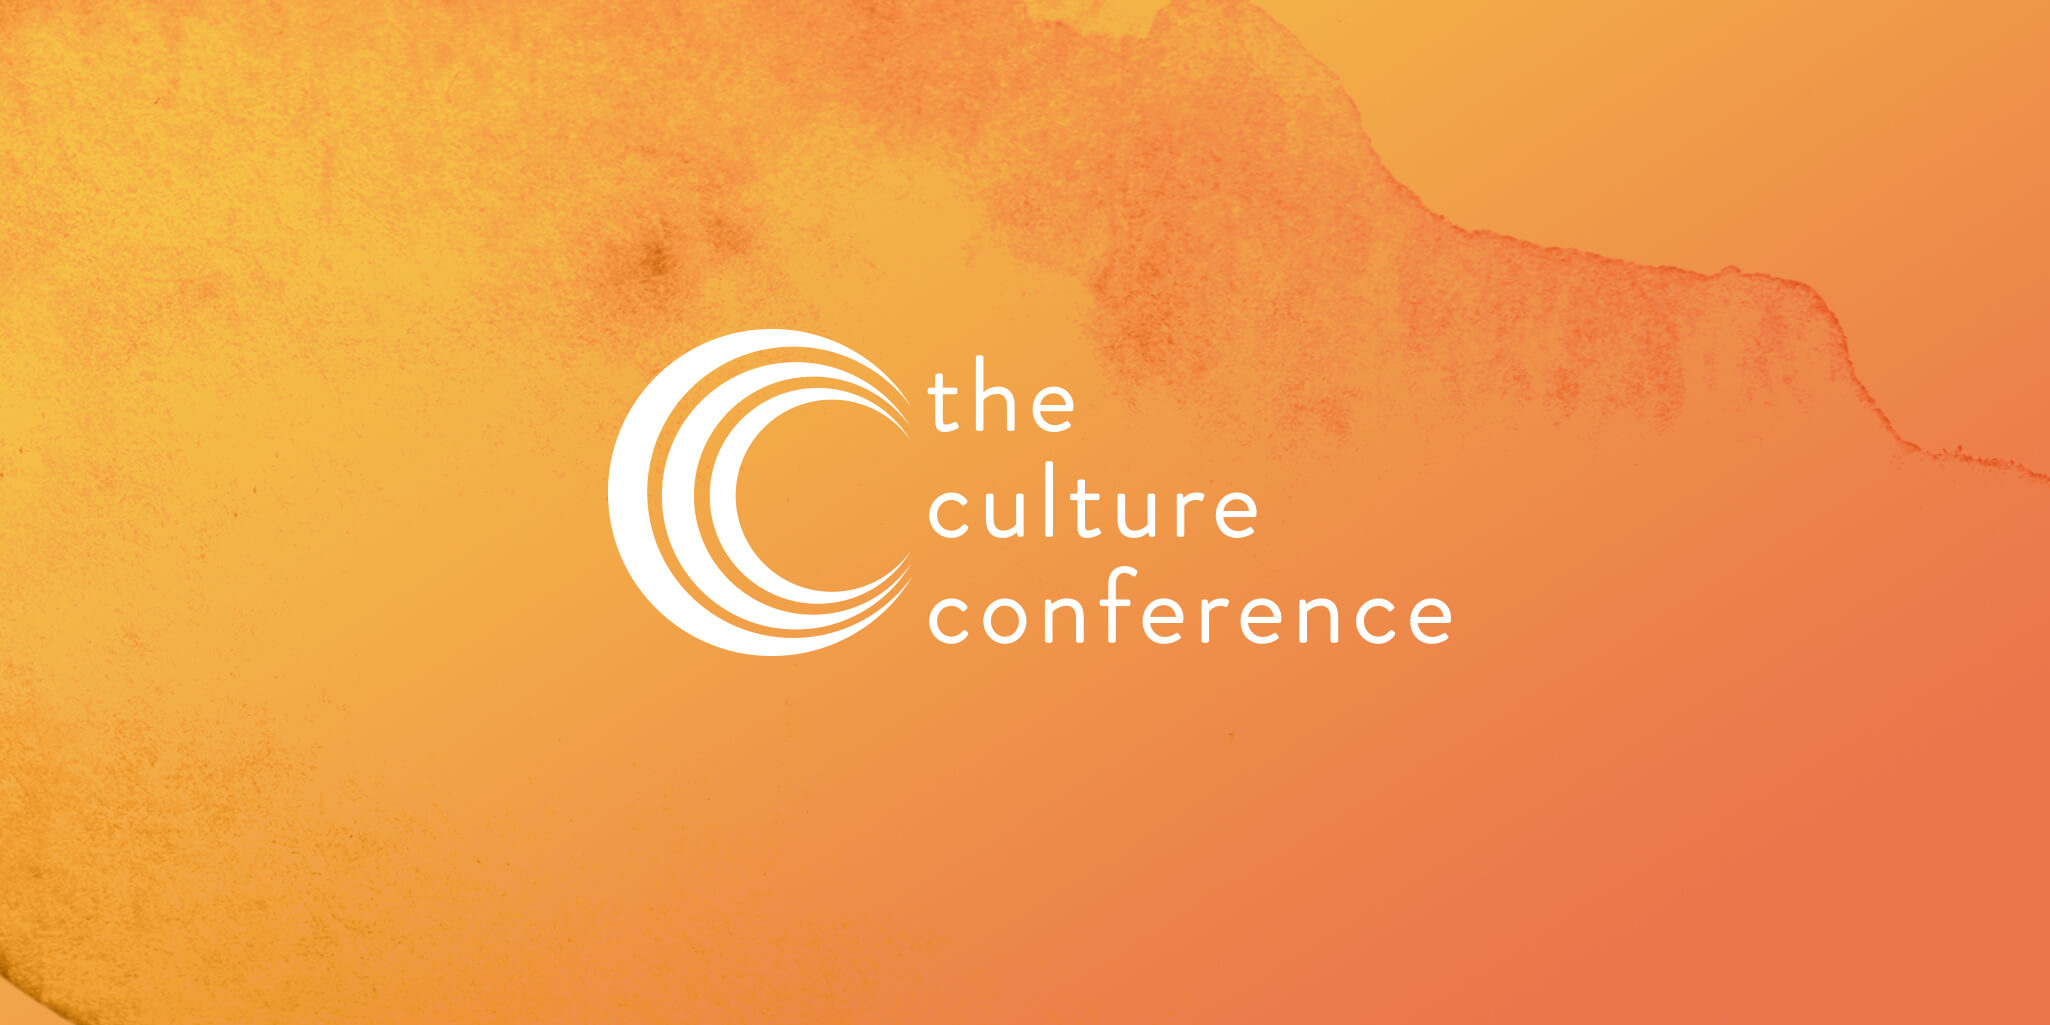 The Culture Conference logo